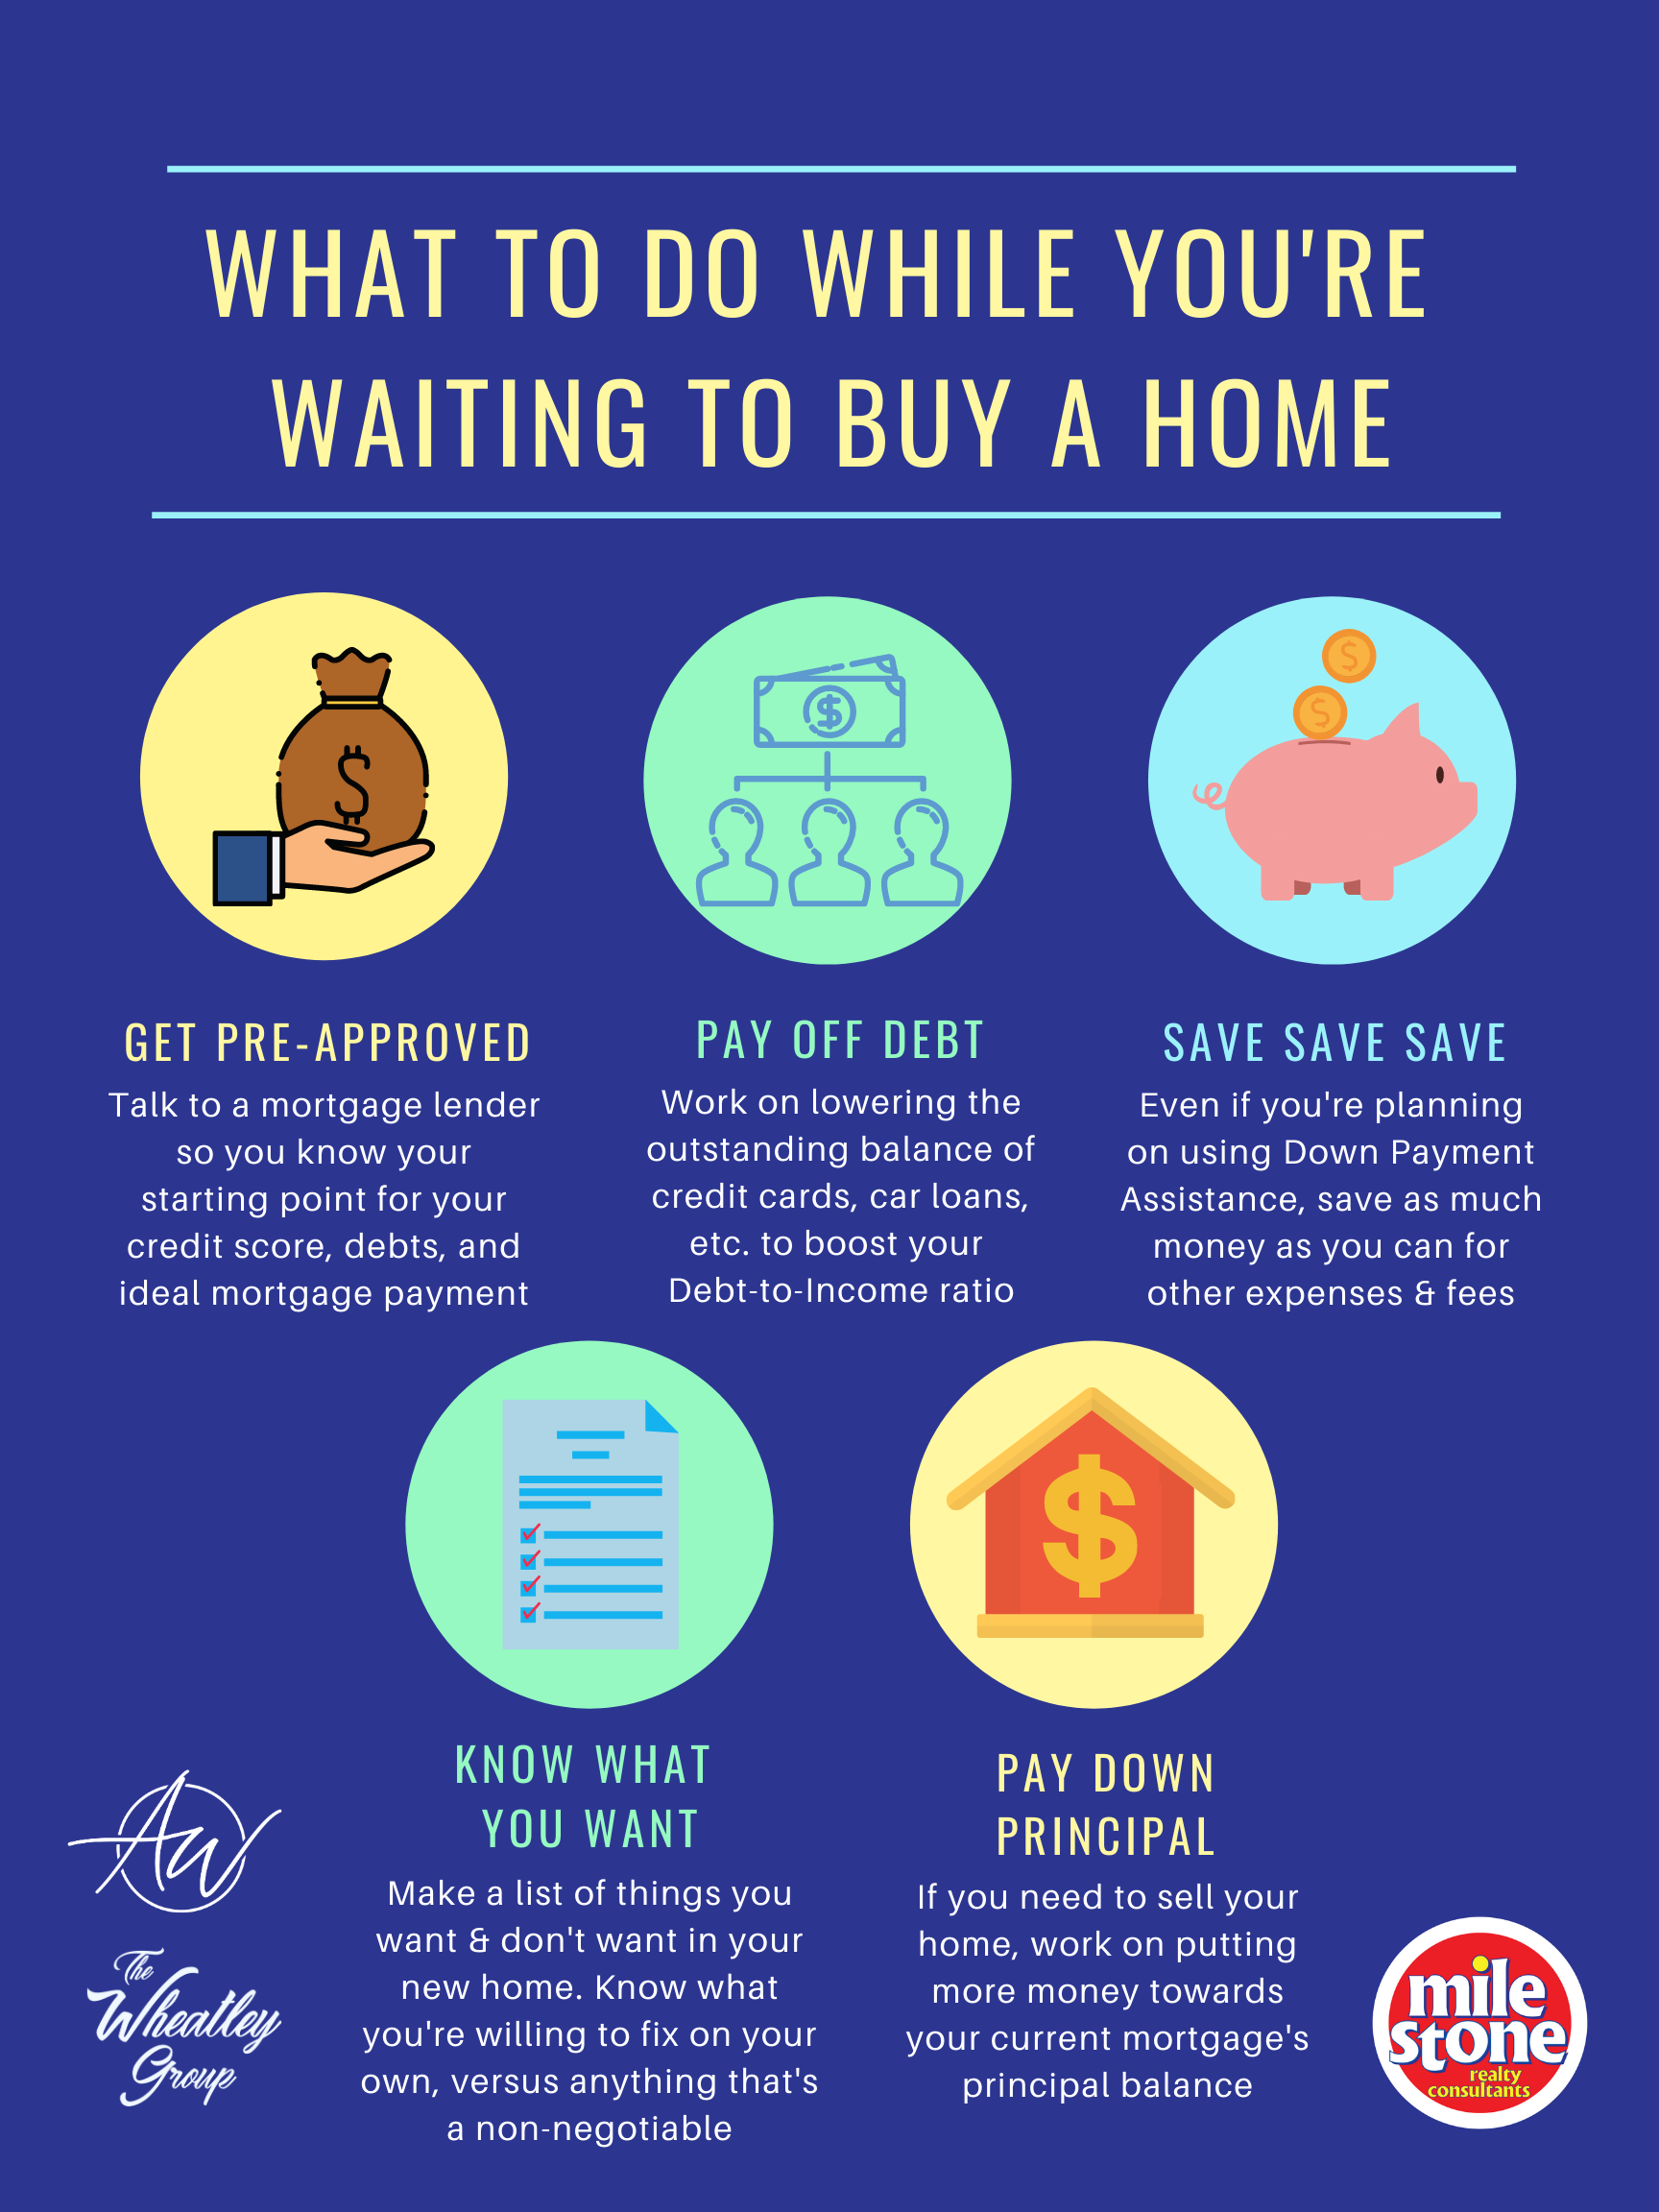 What To Do While You're Waiting To Buy A Home